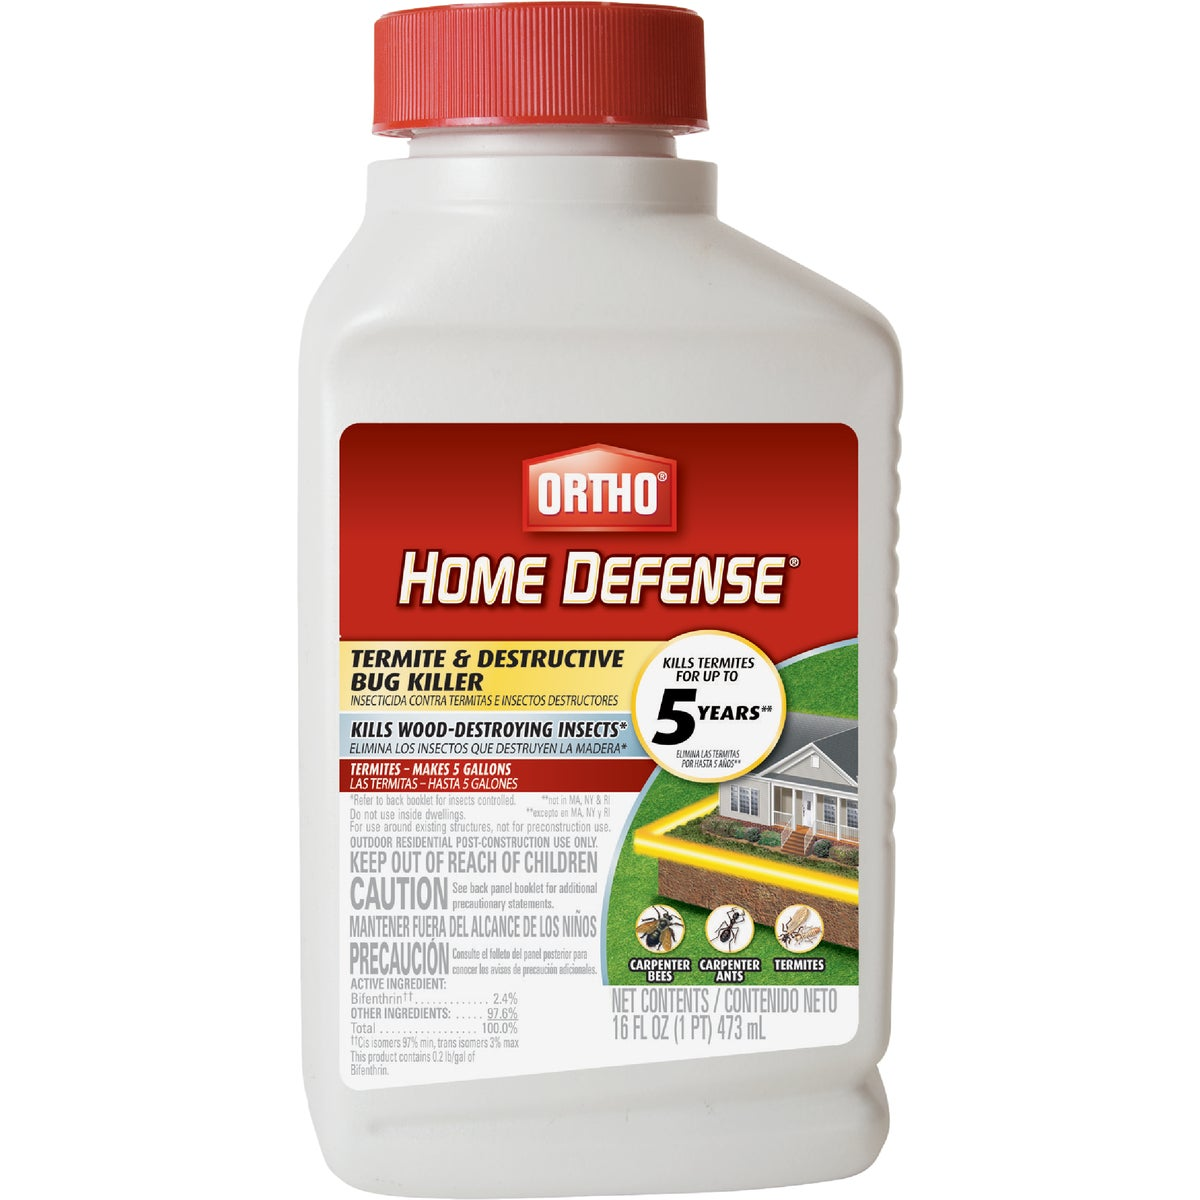 PT TERMITE/D.BUG KILLER - 0194160 by Scotts Company